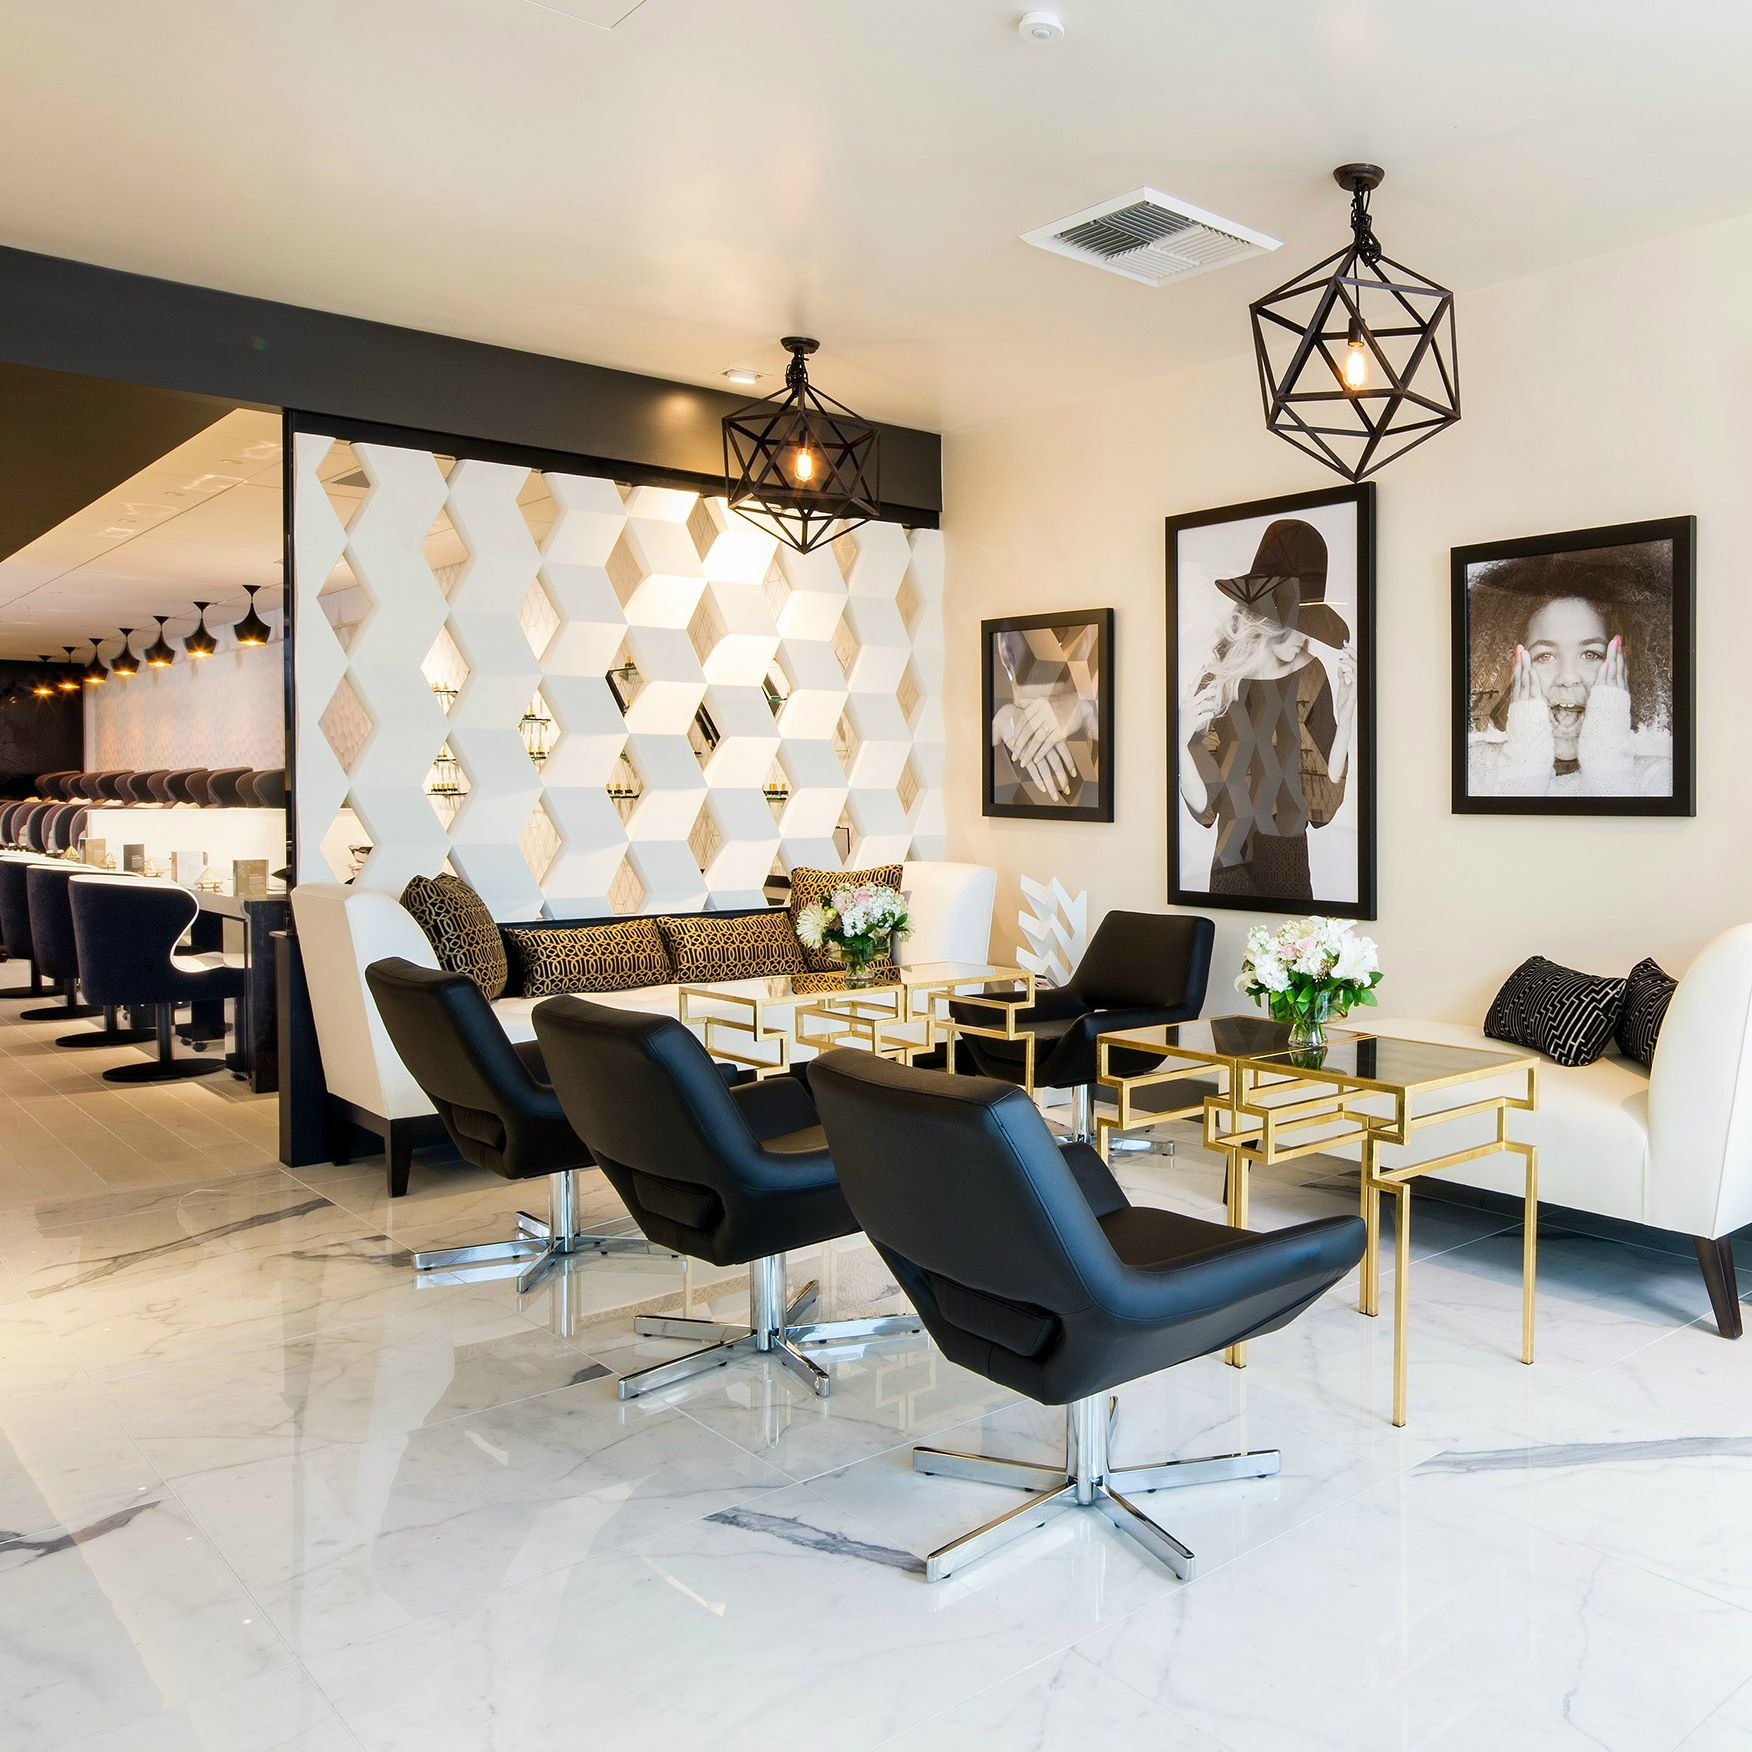 Studio Lounge With Images Salon Interior Design